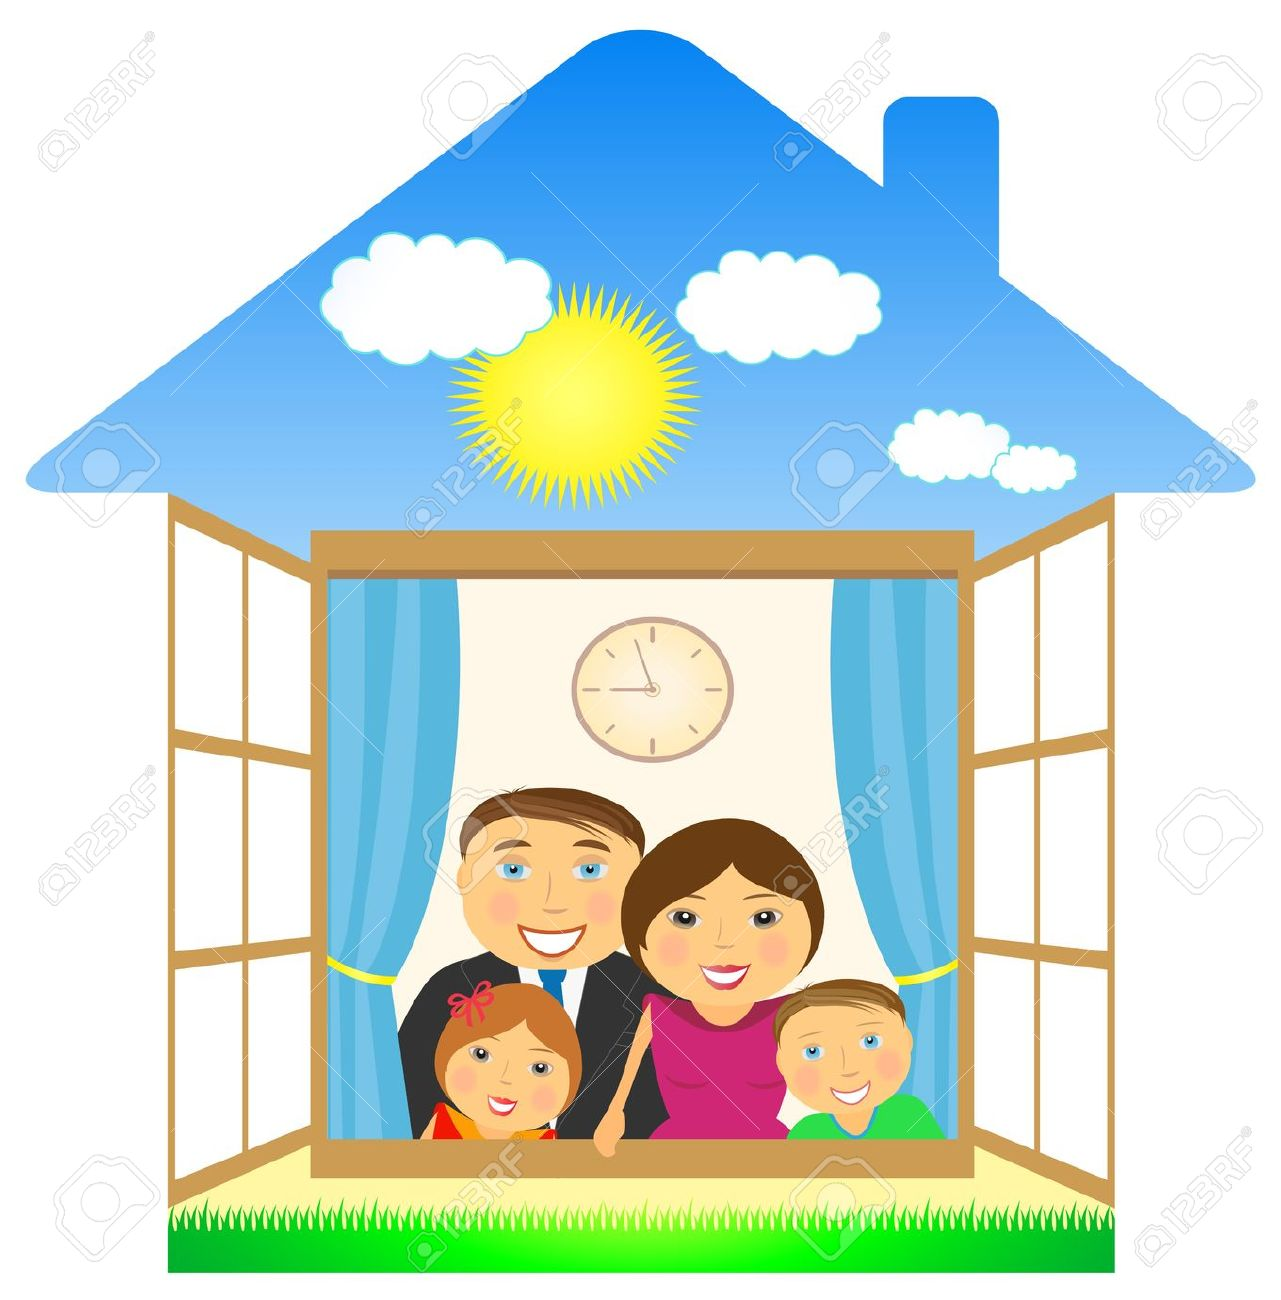 Home and free download. Houses clipart family